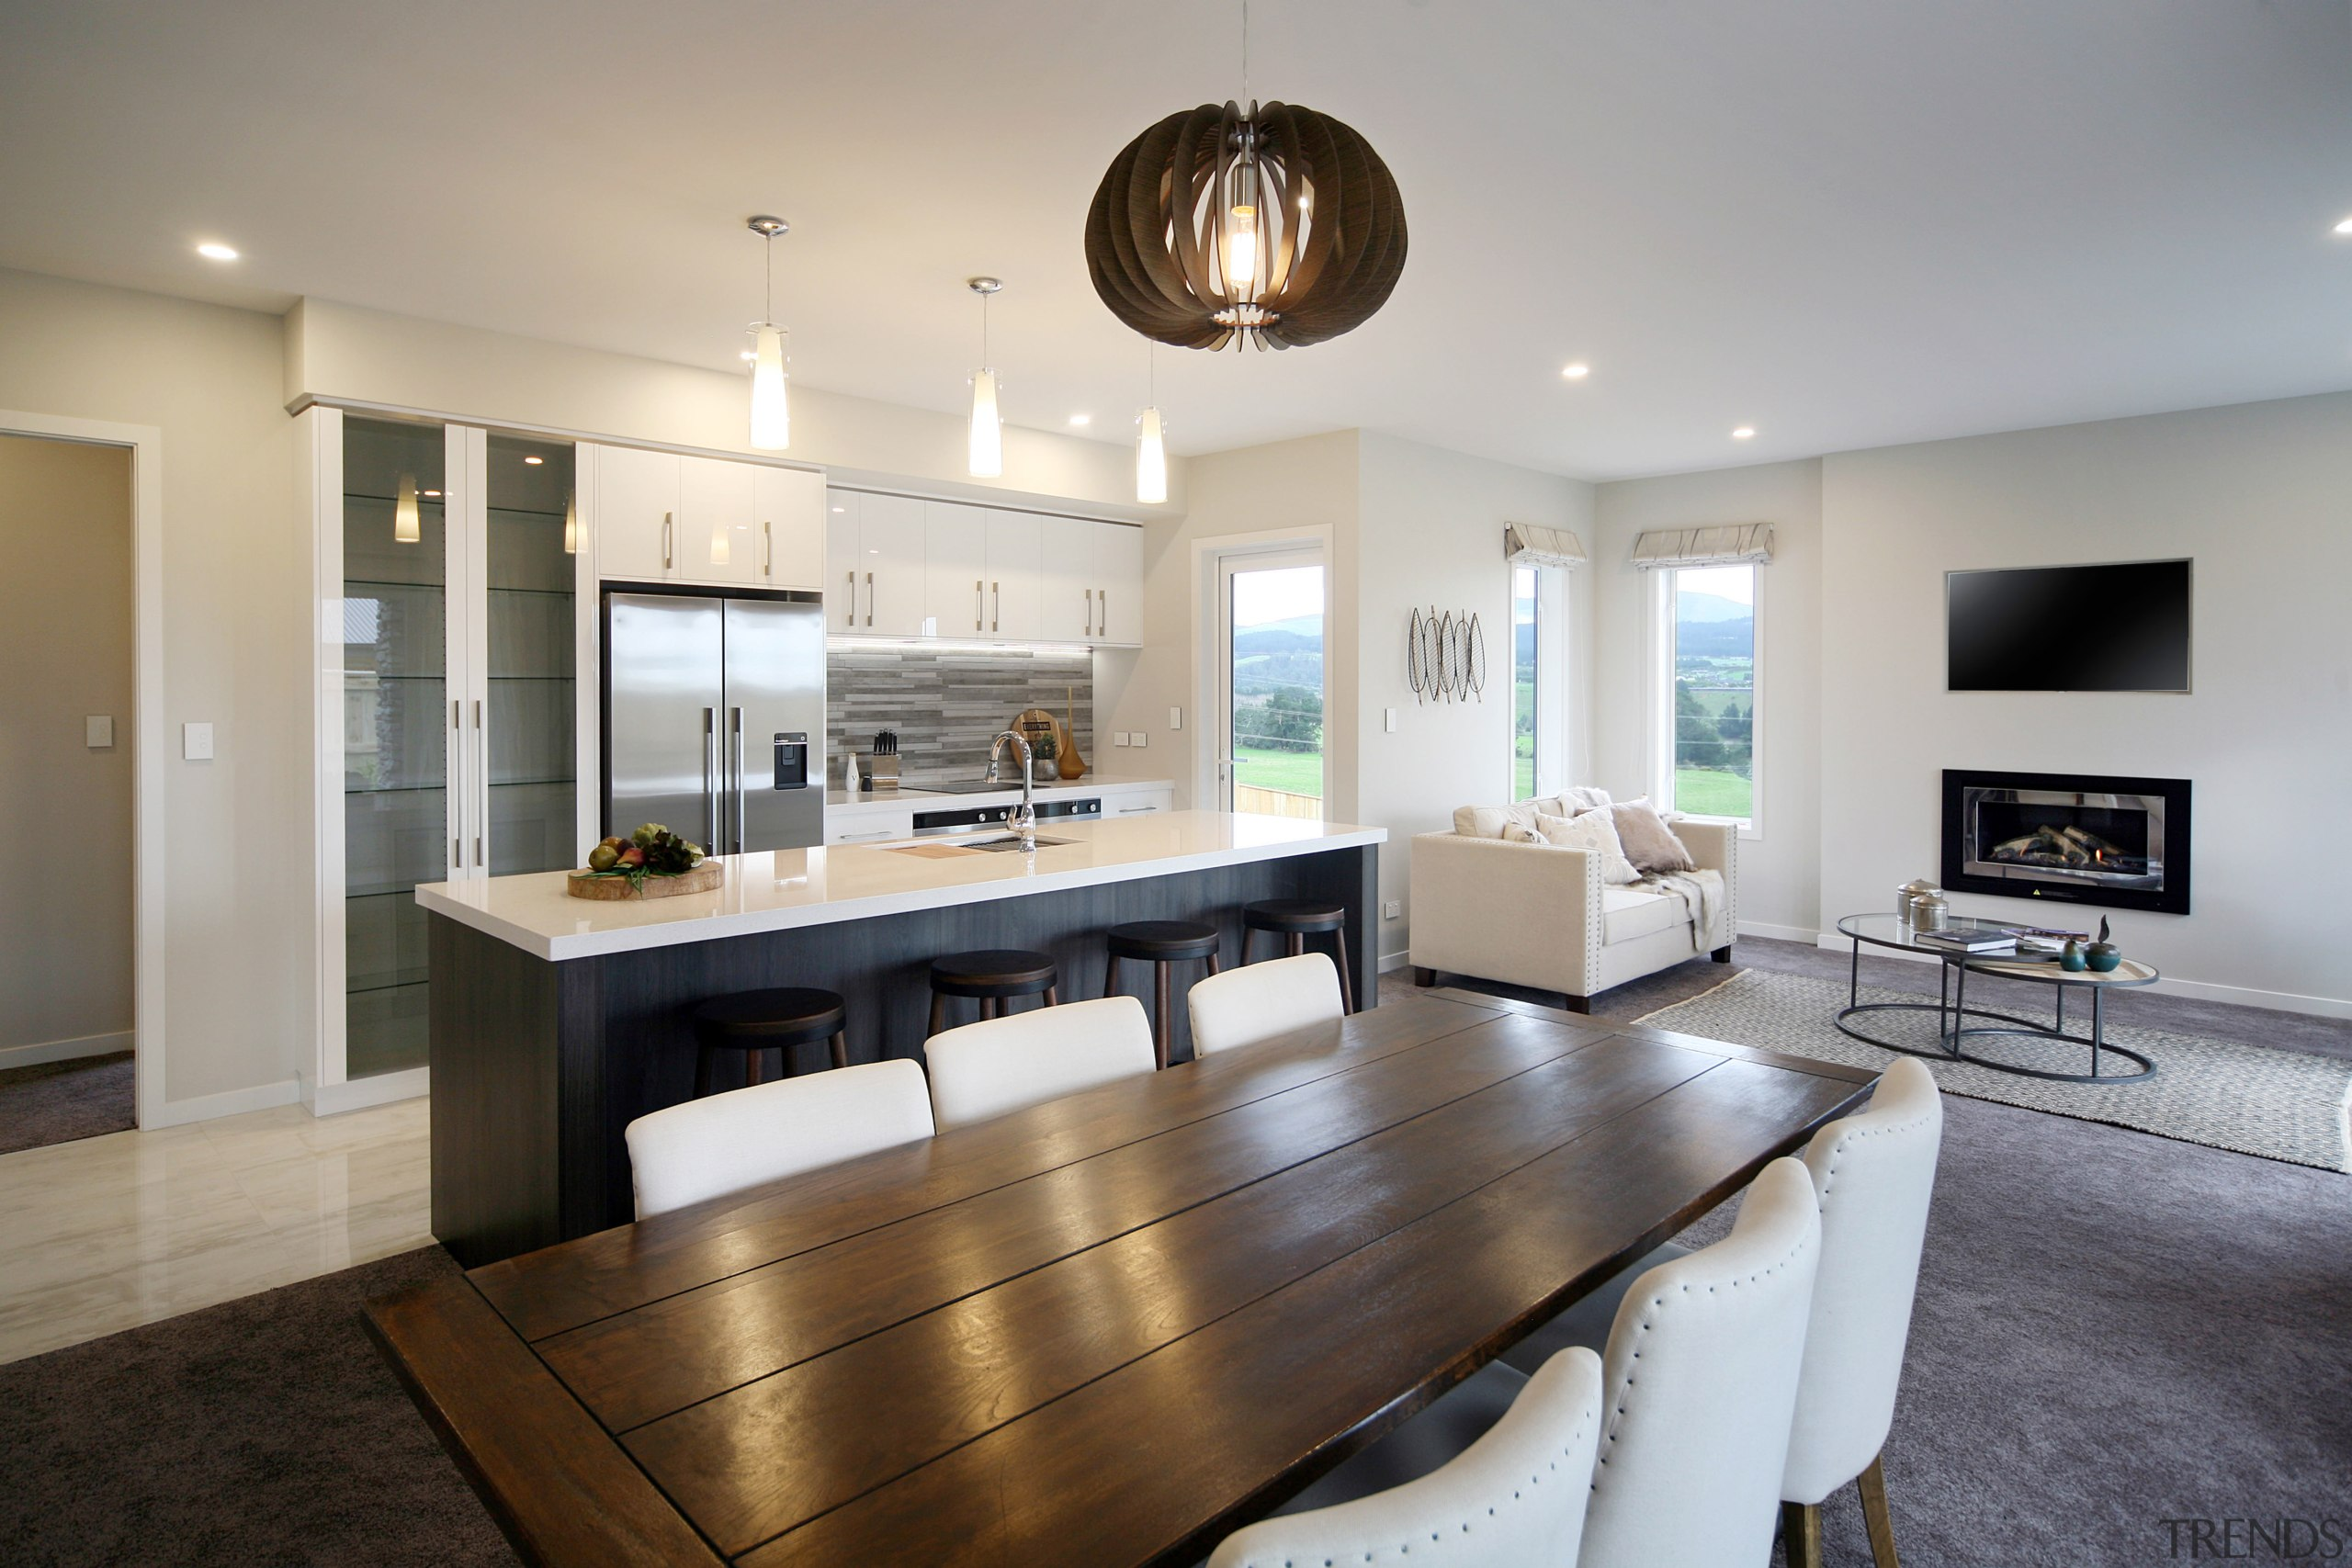 Contemporary cabinets, a chic splashback and a walk-in countertop, interior design, kitchen, property, real estate, room, table, gray